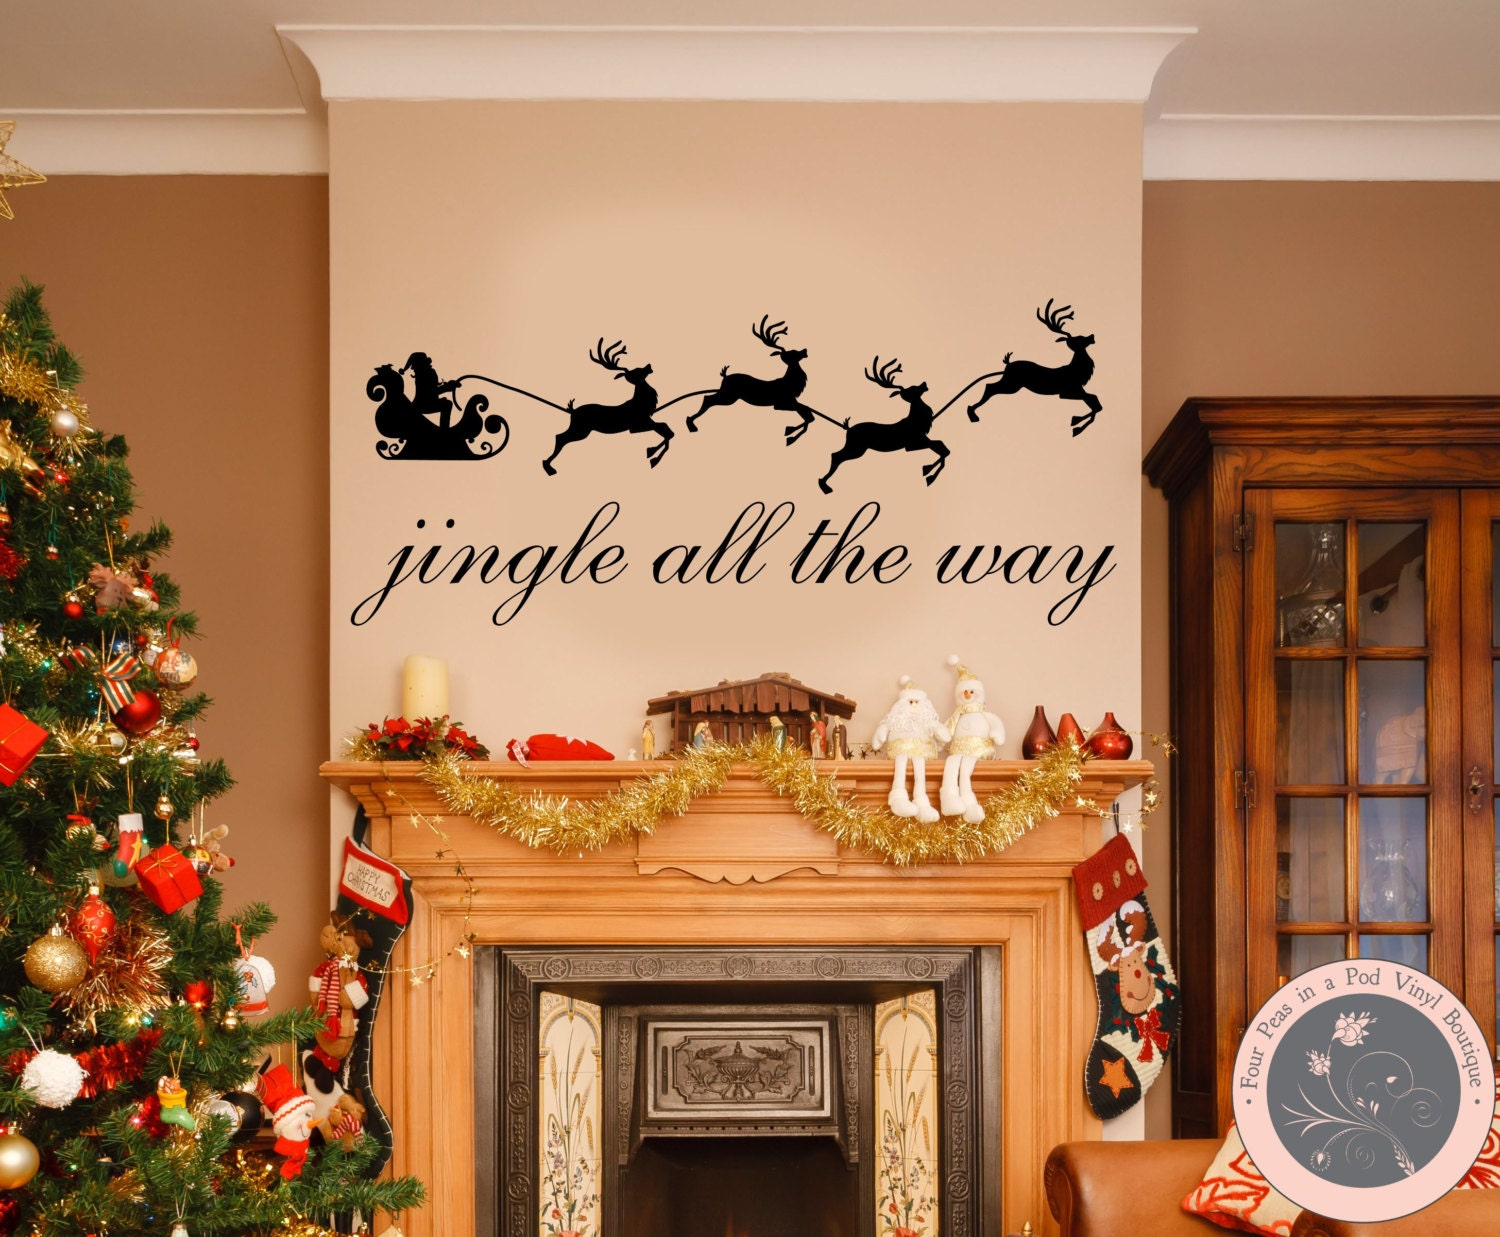 Wall Decals for the Home - Jingle All the Way Sleigh Christmas Wall Decals - FourPeasinaPodVinyl